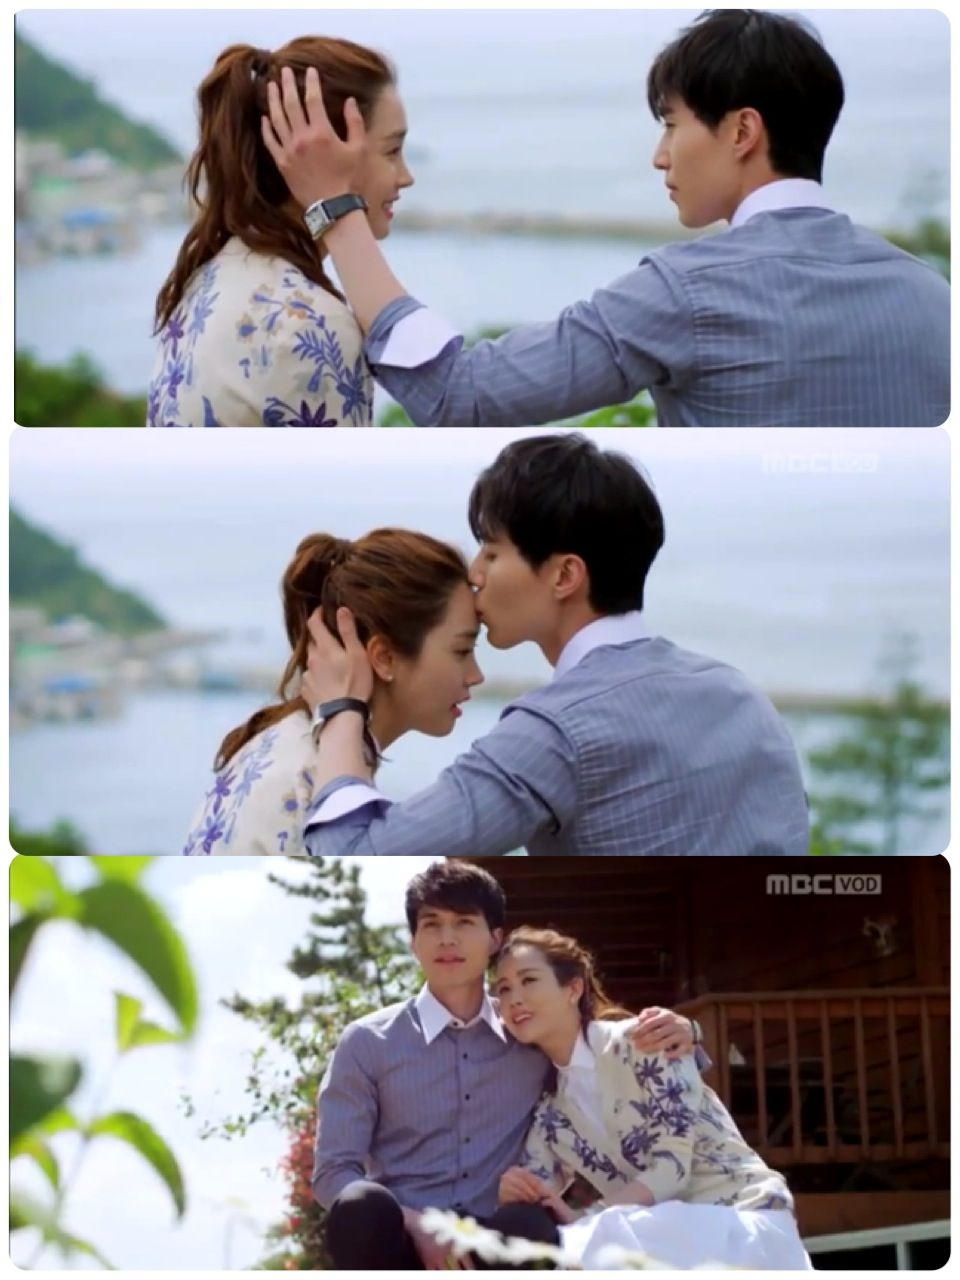 Hotel King Lee Dong Wook Lee Da Hae Donghae Fotos Shows